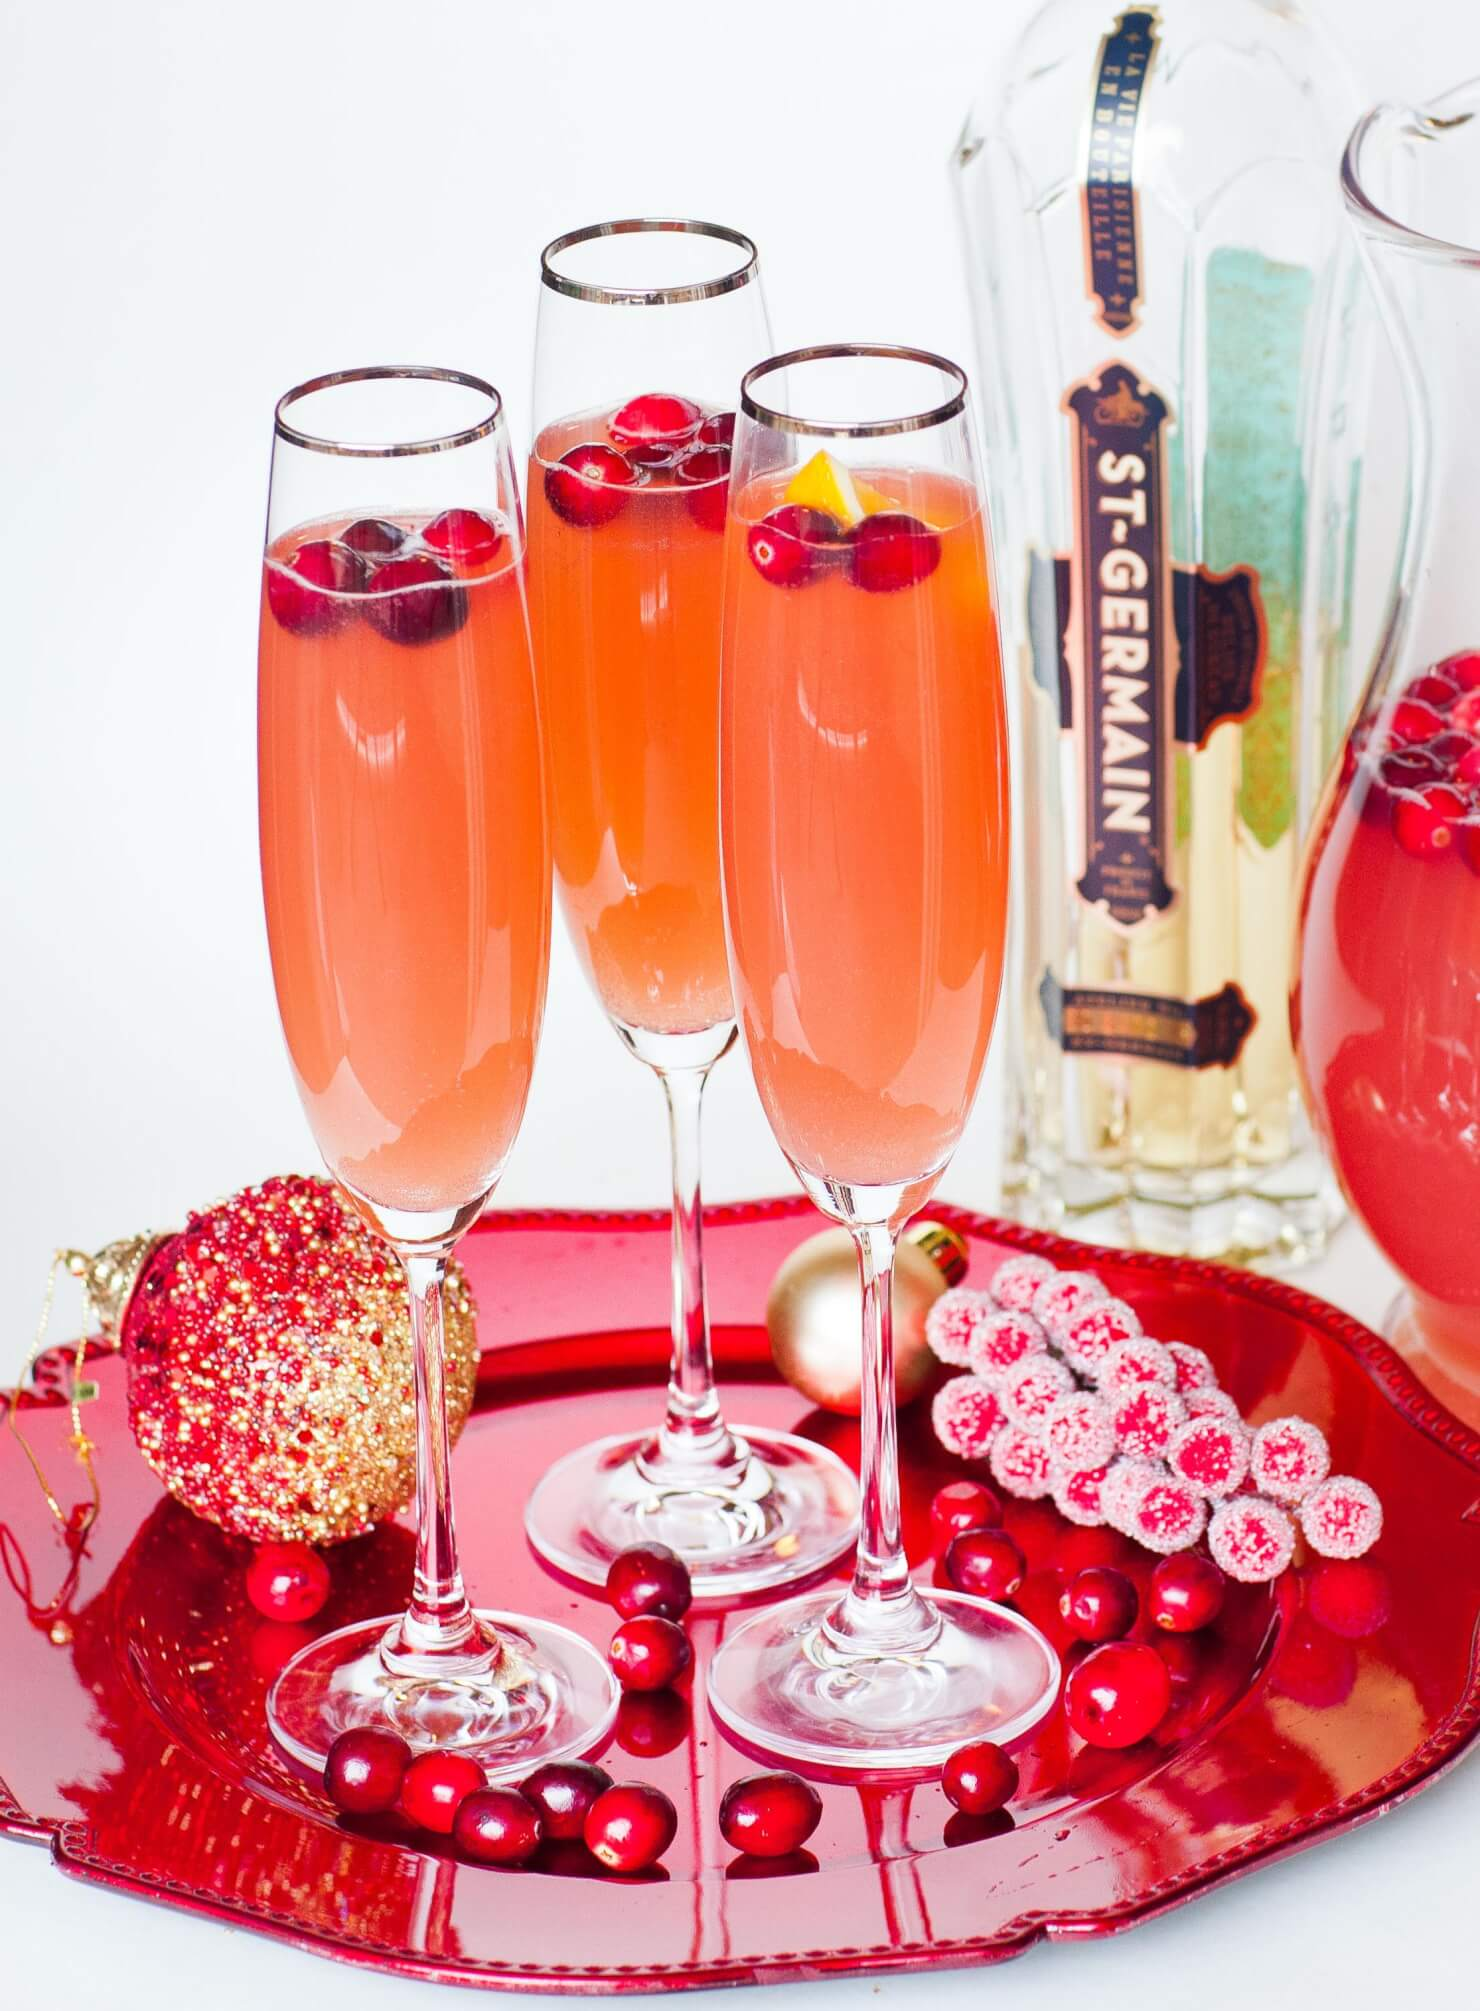 Cranberry Juice Punch Recipes Without Alcohol Dandk